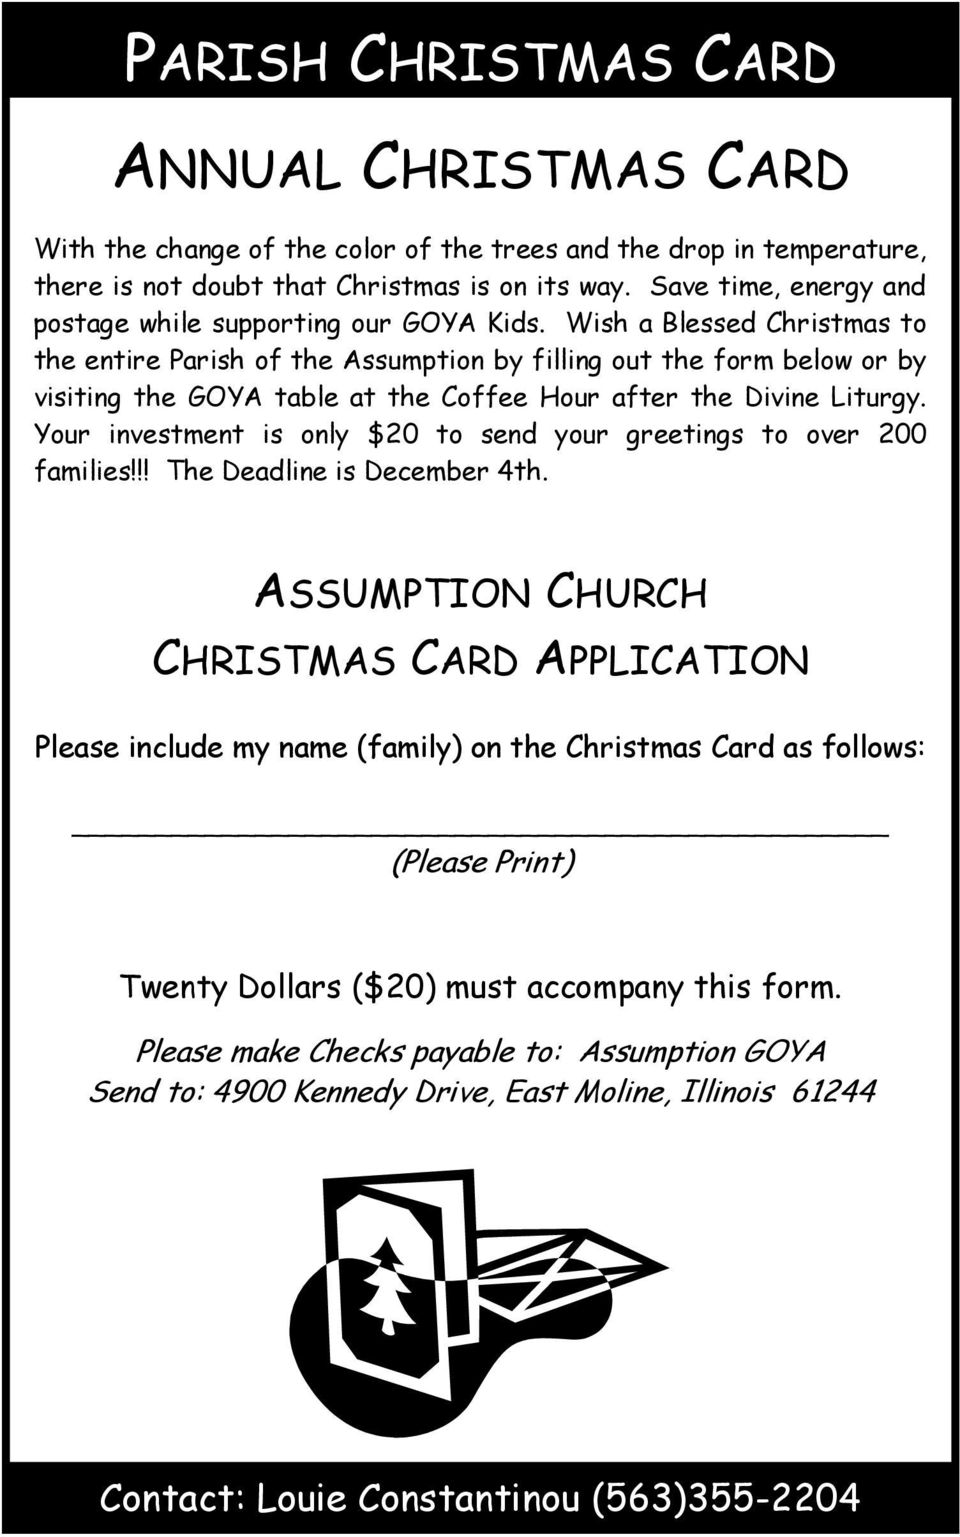 Wish a Blessed Christmas to the entire Parish of the Assumption by filling out the form below or by visiting the GOYA table at the Coffee Hour after the Divine Liturgy.